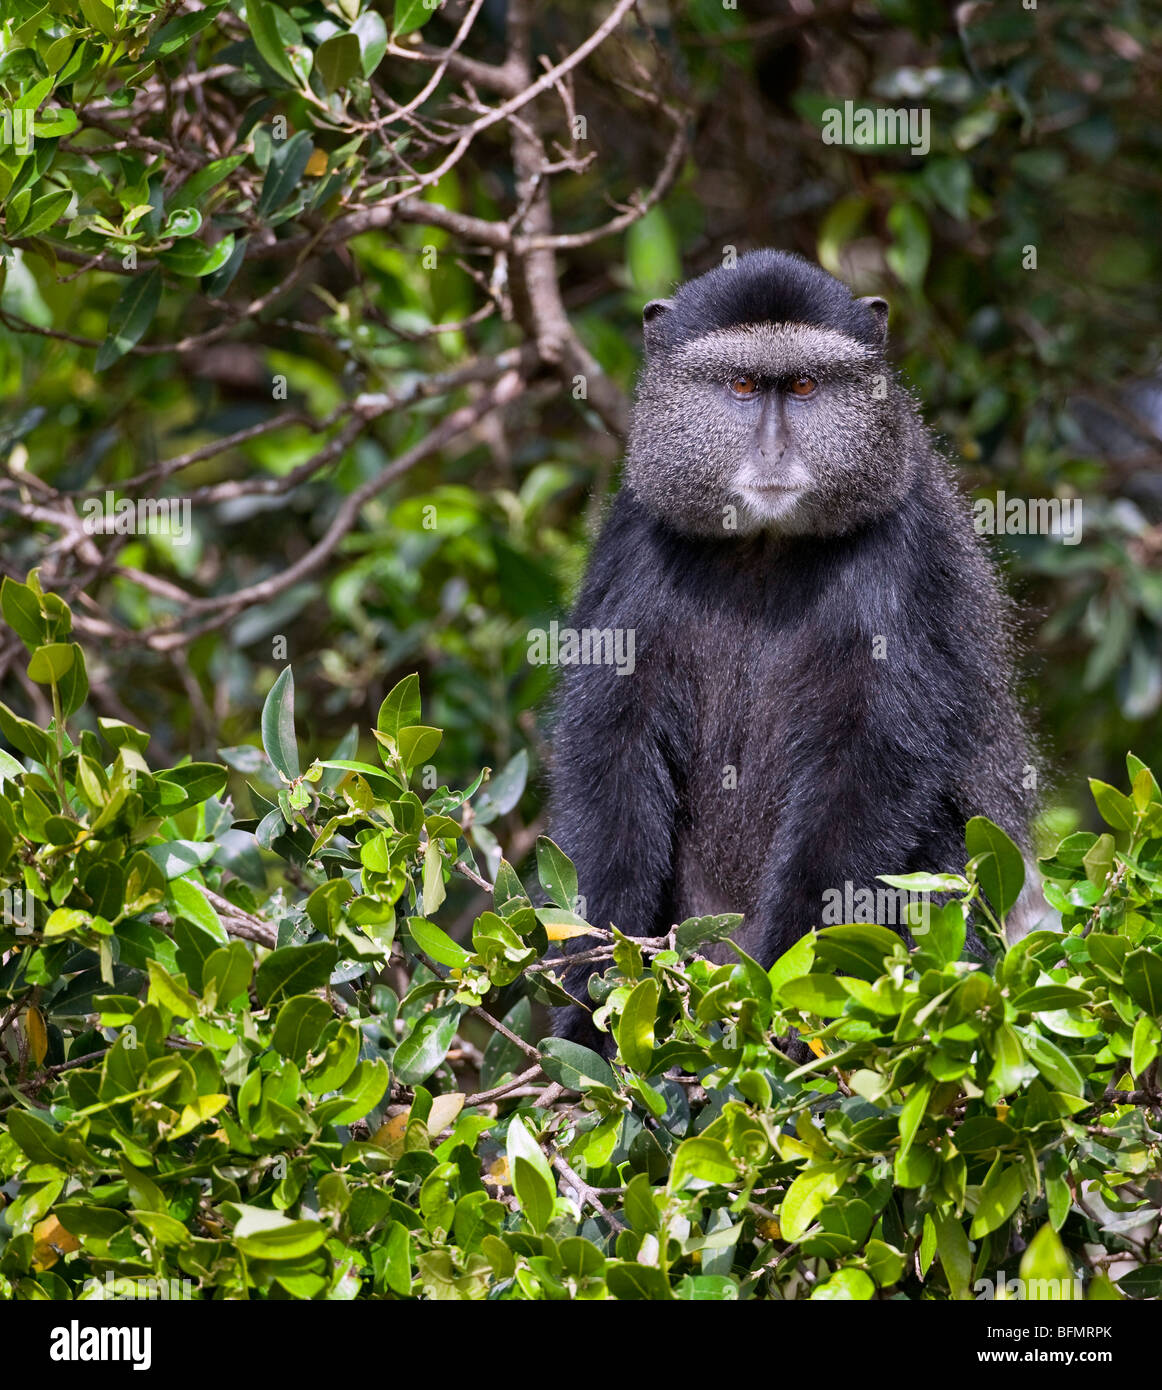 A Blue Monkey in the forests of Mount Elgon, Kenya  s second highest mountain of volcanic origin. - Stock Image